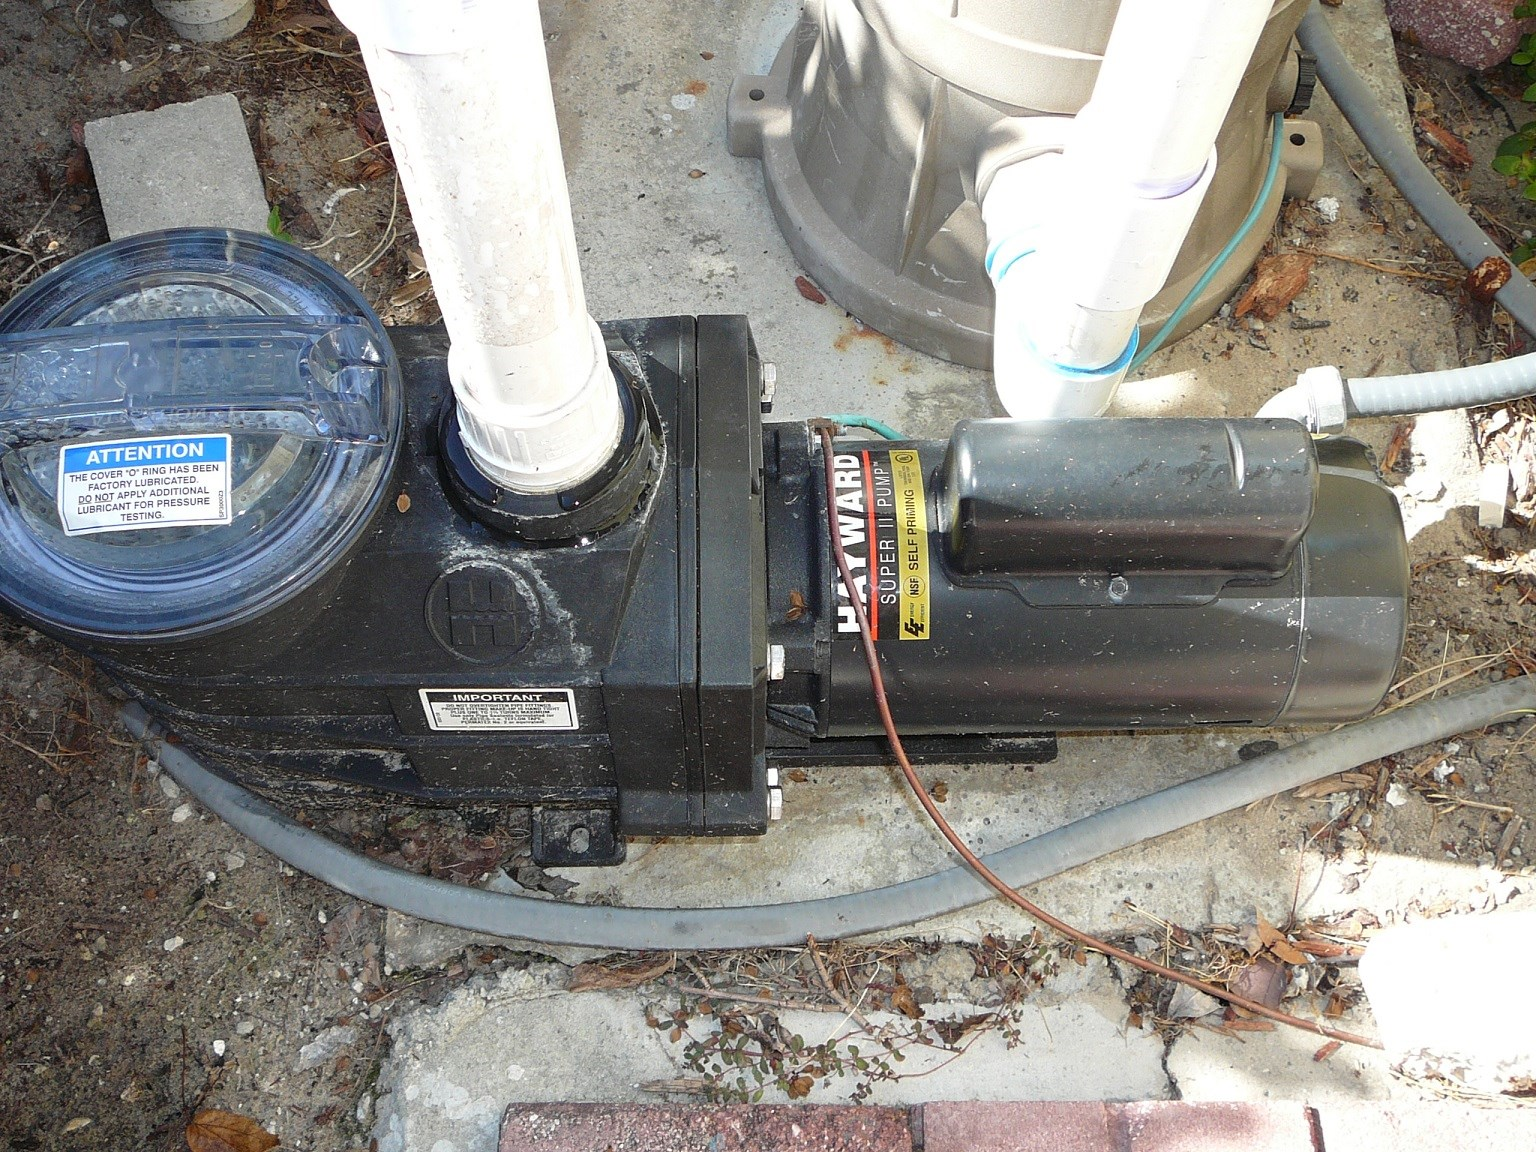 How To Identify Pool Motor Types Spa Pump Electrical Wiring There Are Five Distinct Designs That Commonly Found On Swim And Pumps This Guide Briefly Explains The Characteristics Of These